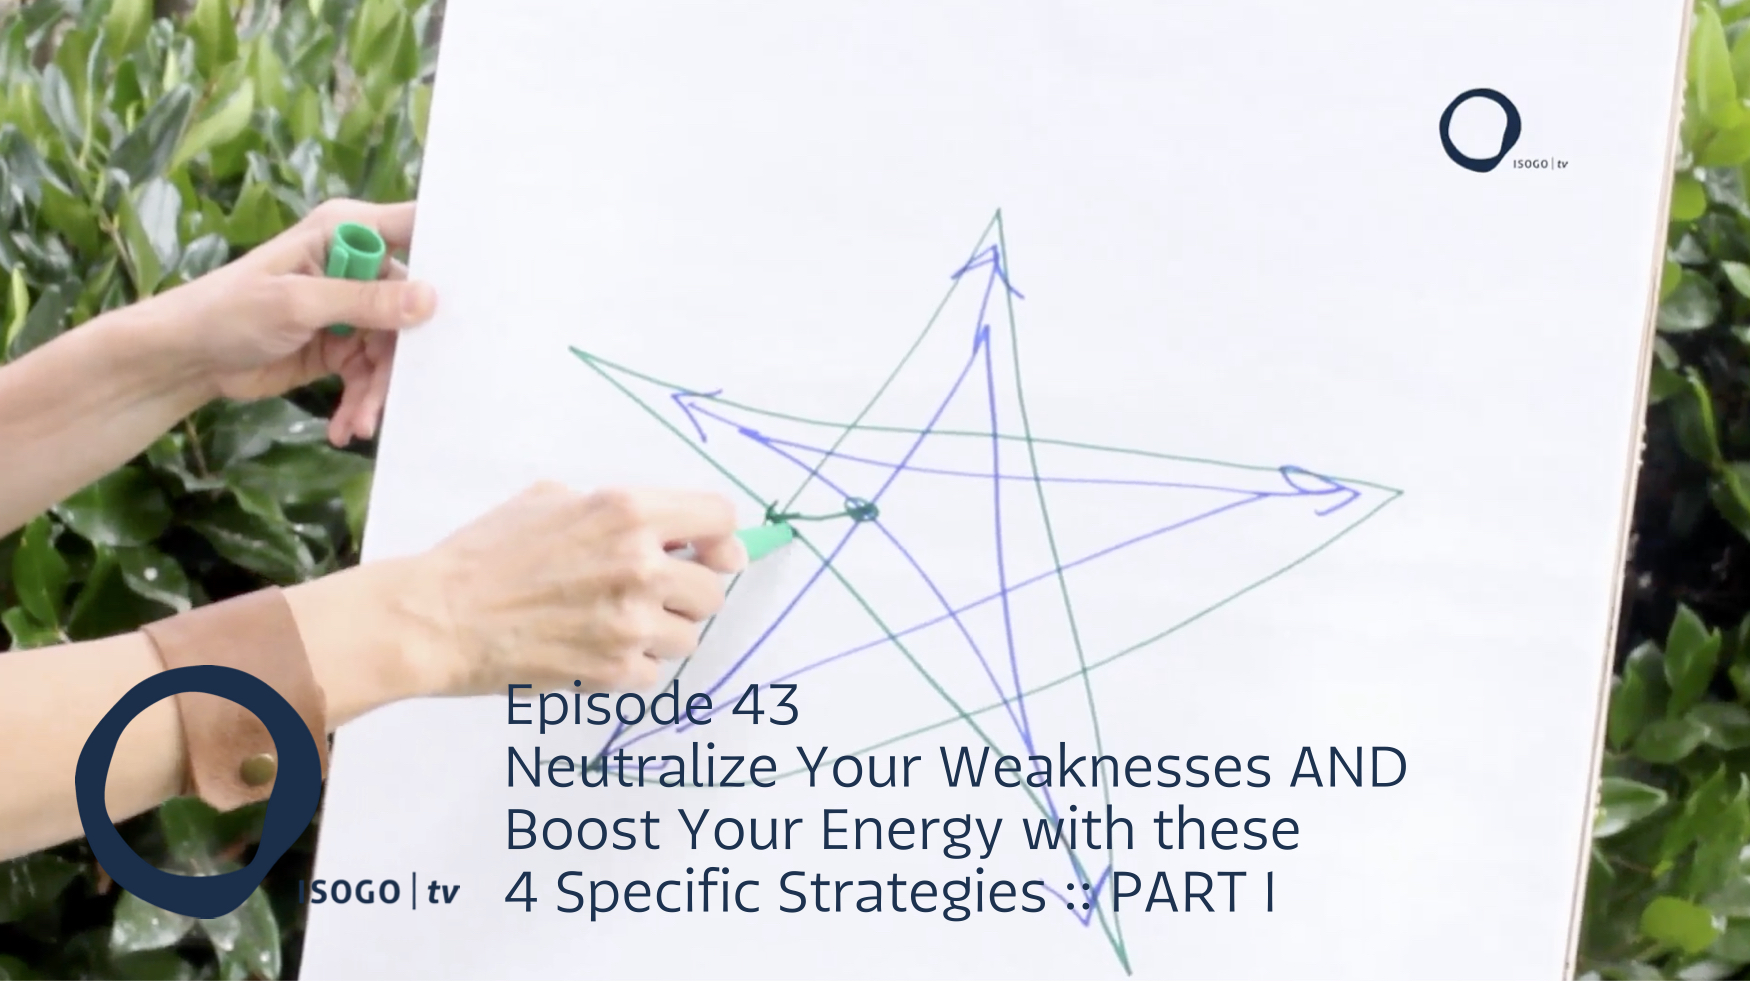 Neutralize Your Weaknesses AND Boost Your Energy with these 4 Specific Strategies :: Part 1 | Isogo TV Episode 43